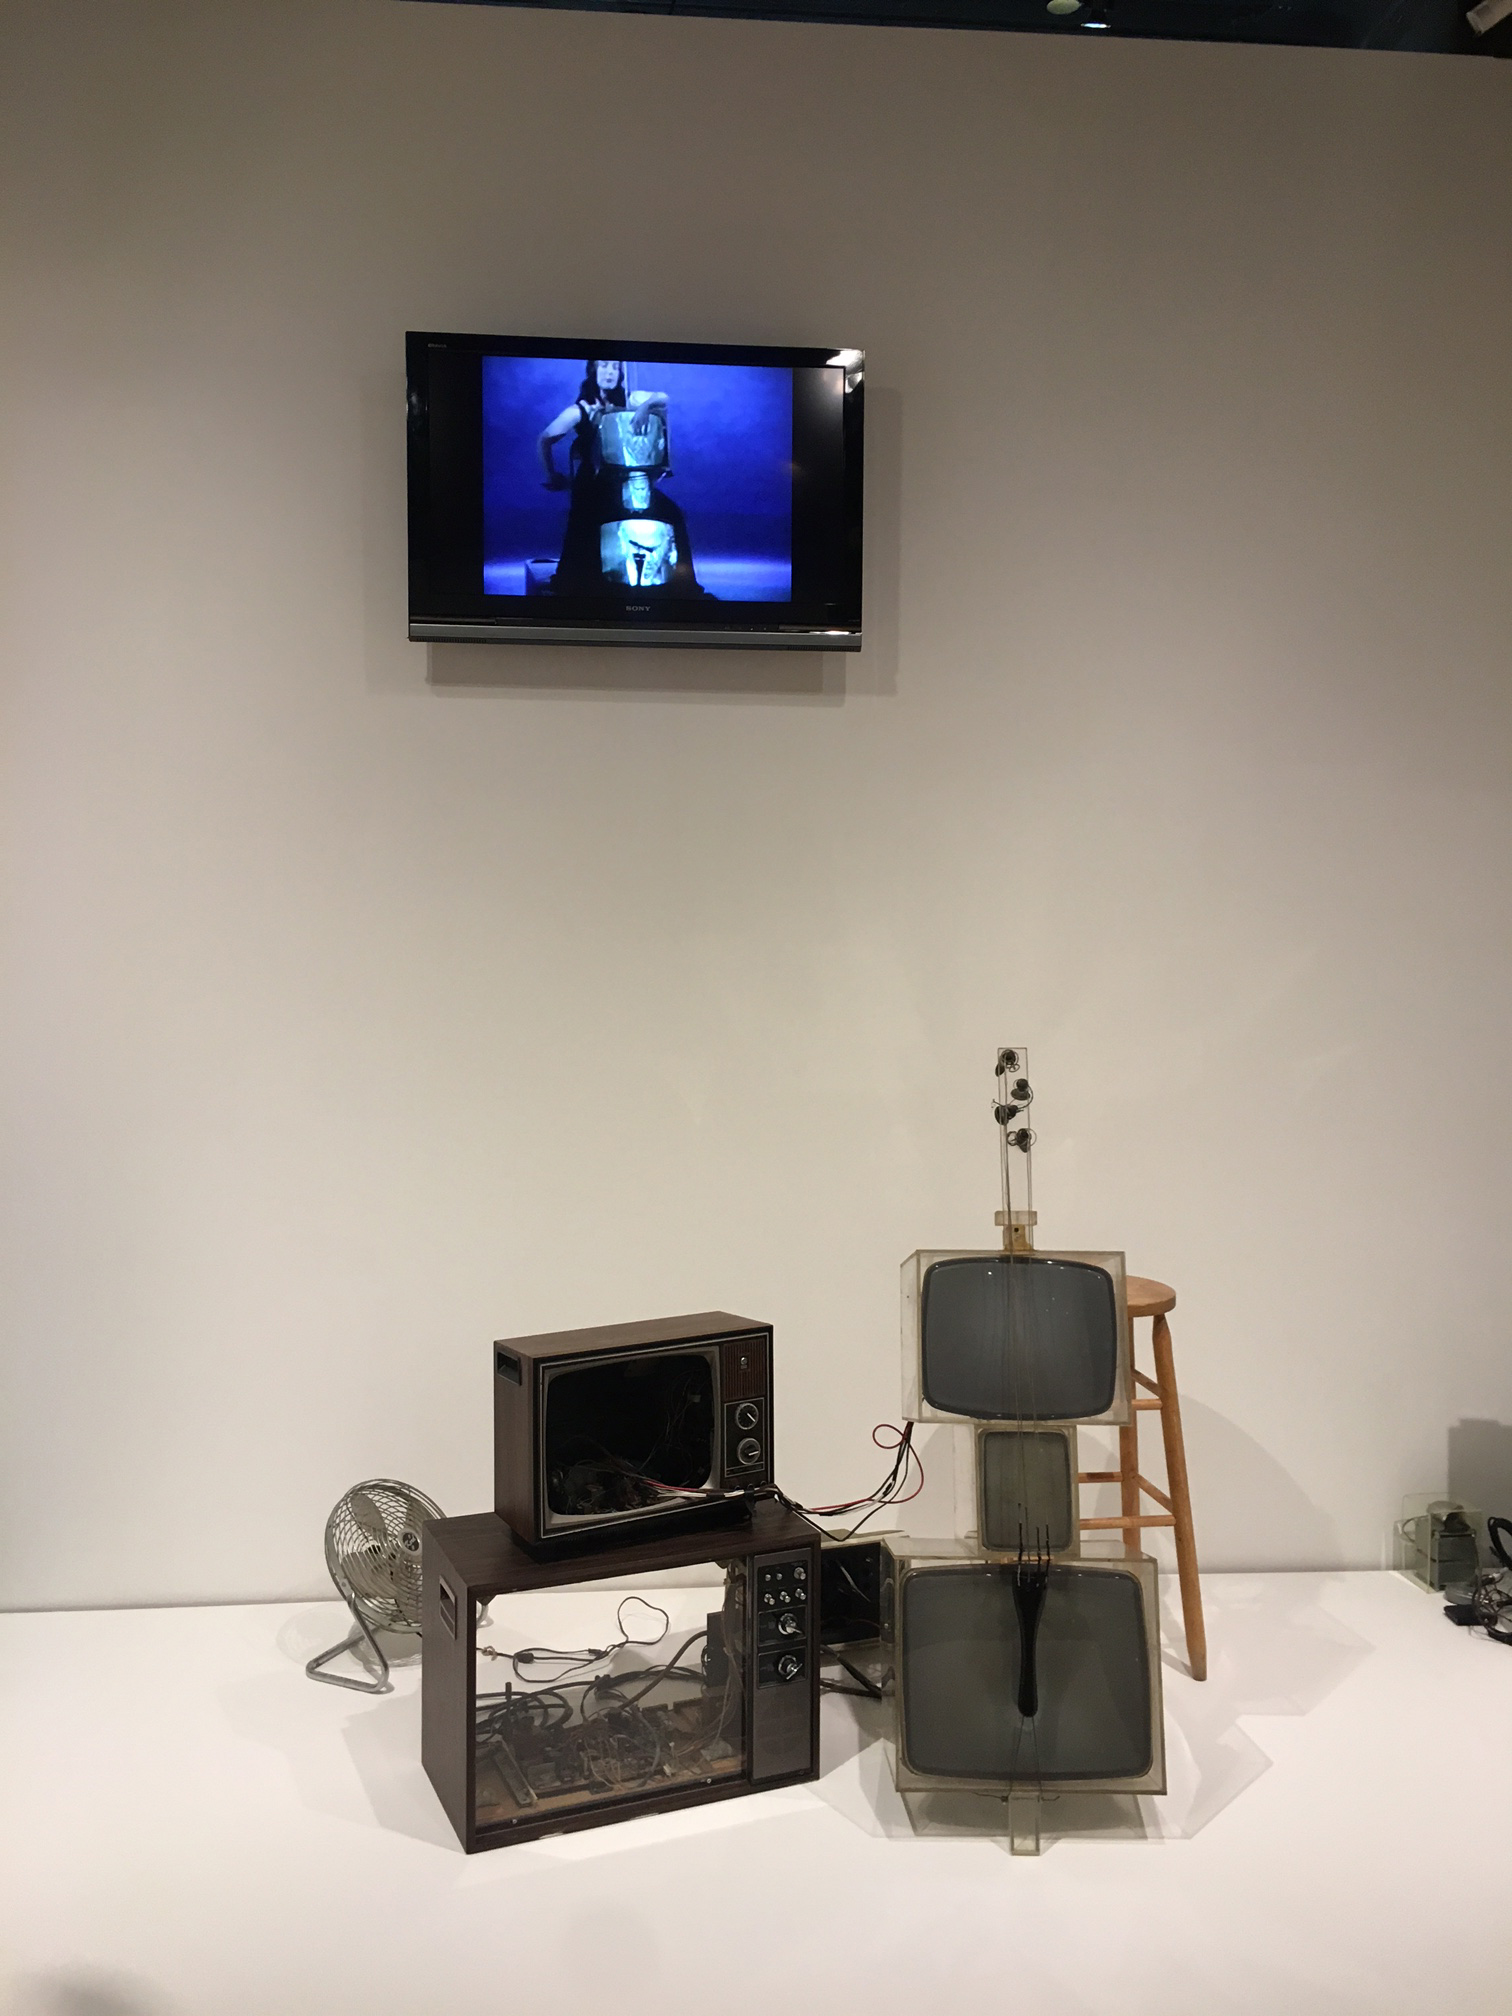 TV Cello, 1971, Nam June Paik (American, born Korea, 1932-2006) Video tubes, TV chassis, Plexiglas boxes, electronics, and wiring. Collection Walker Art Center, Minneapolis. T. B. Walker Acquisition Fund, 1992. Formerly collection of Otto Pienne and Elizabeth Goldring, Massachusetts.